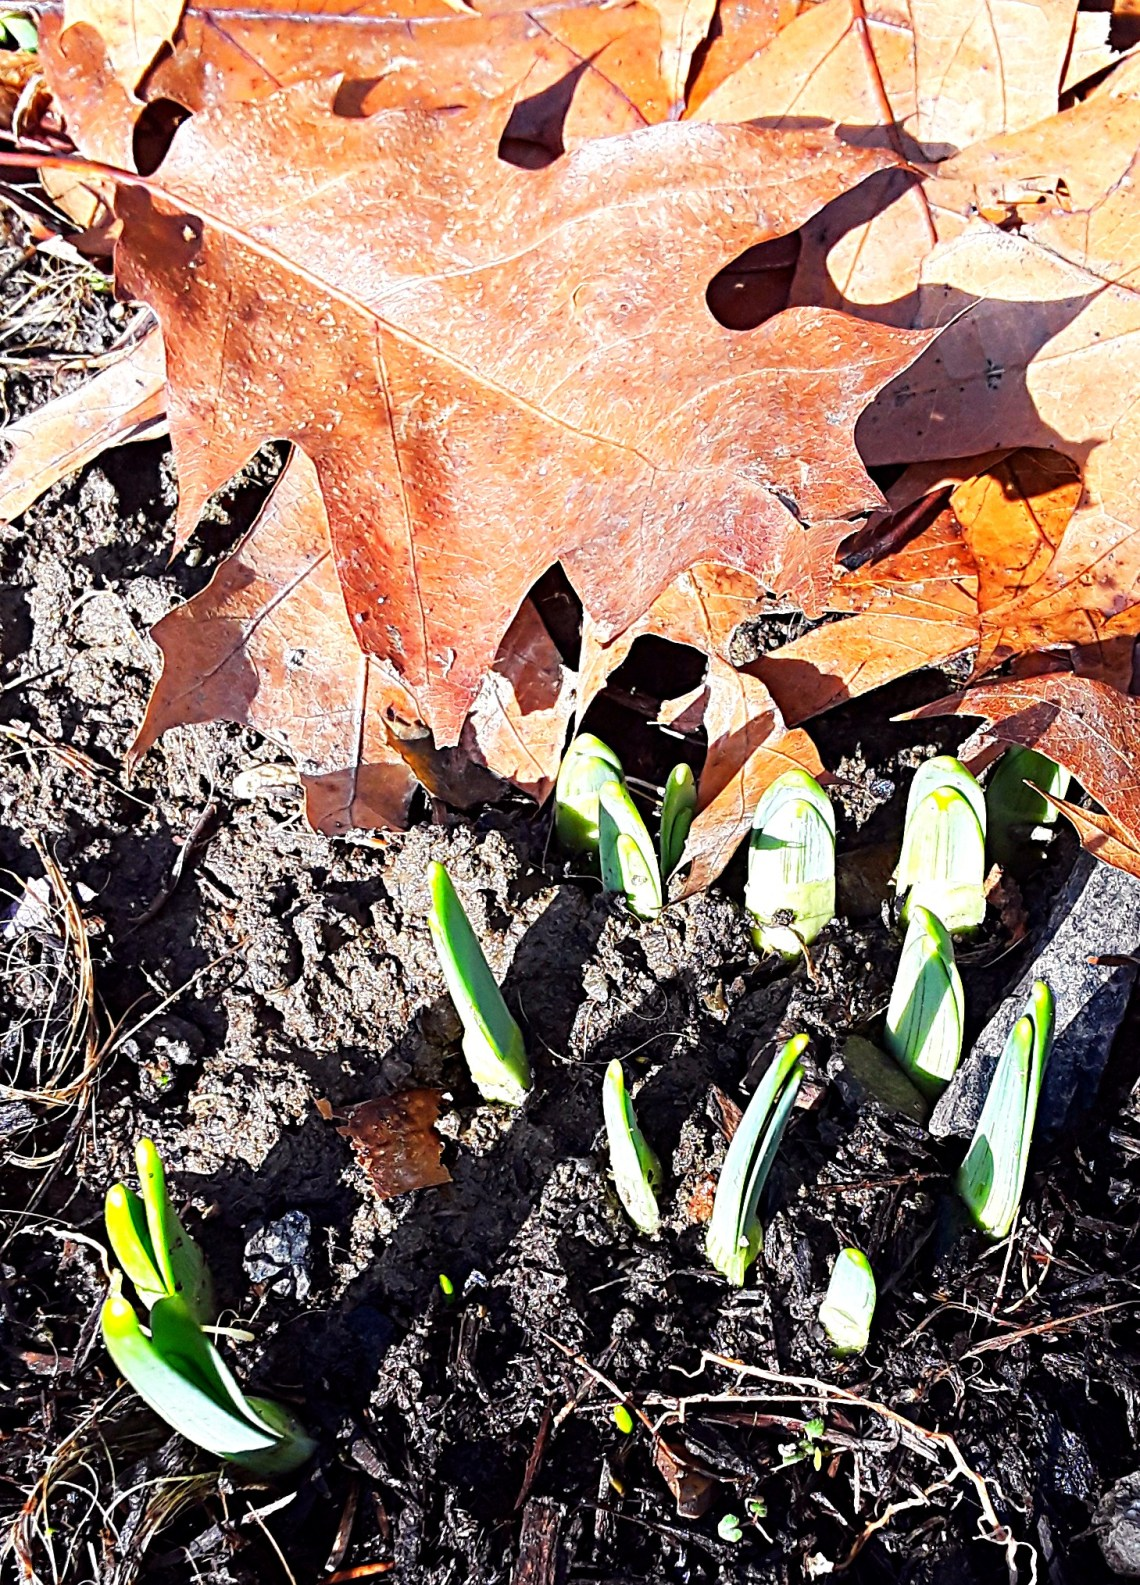 Tips of daffodil foliage emerging from the ground